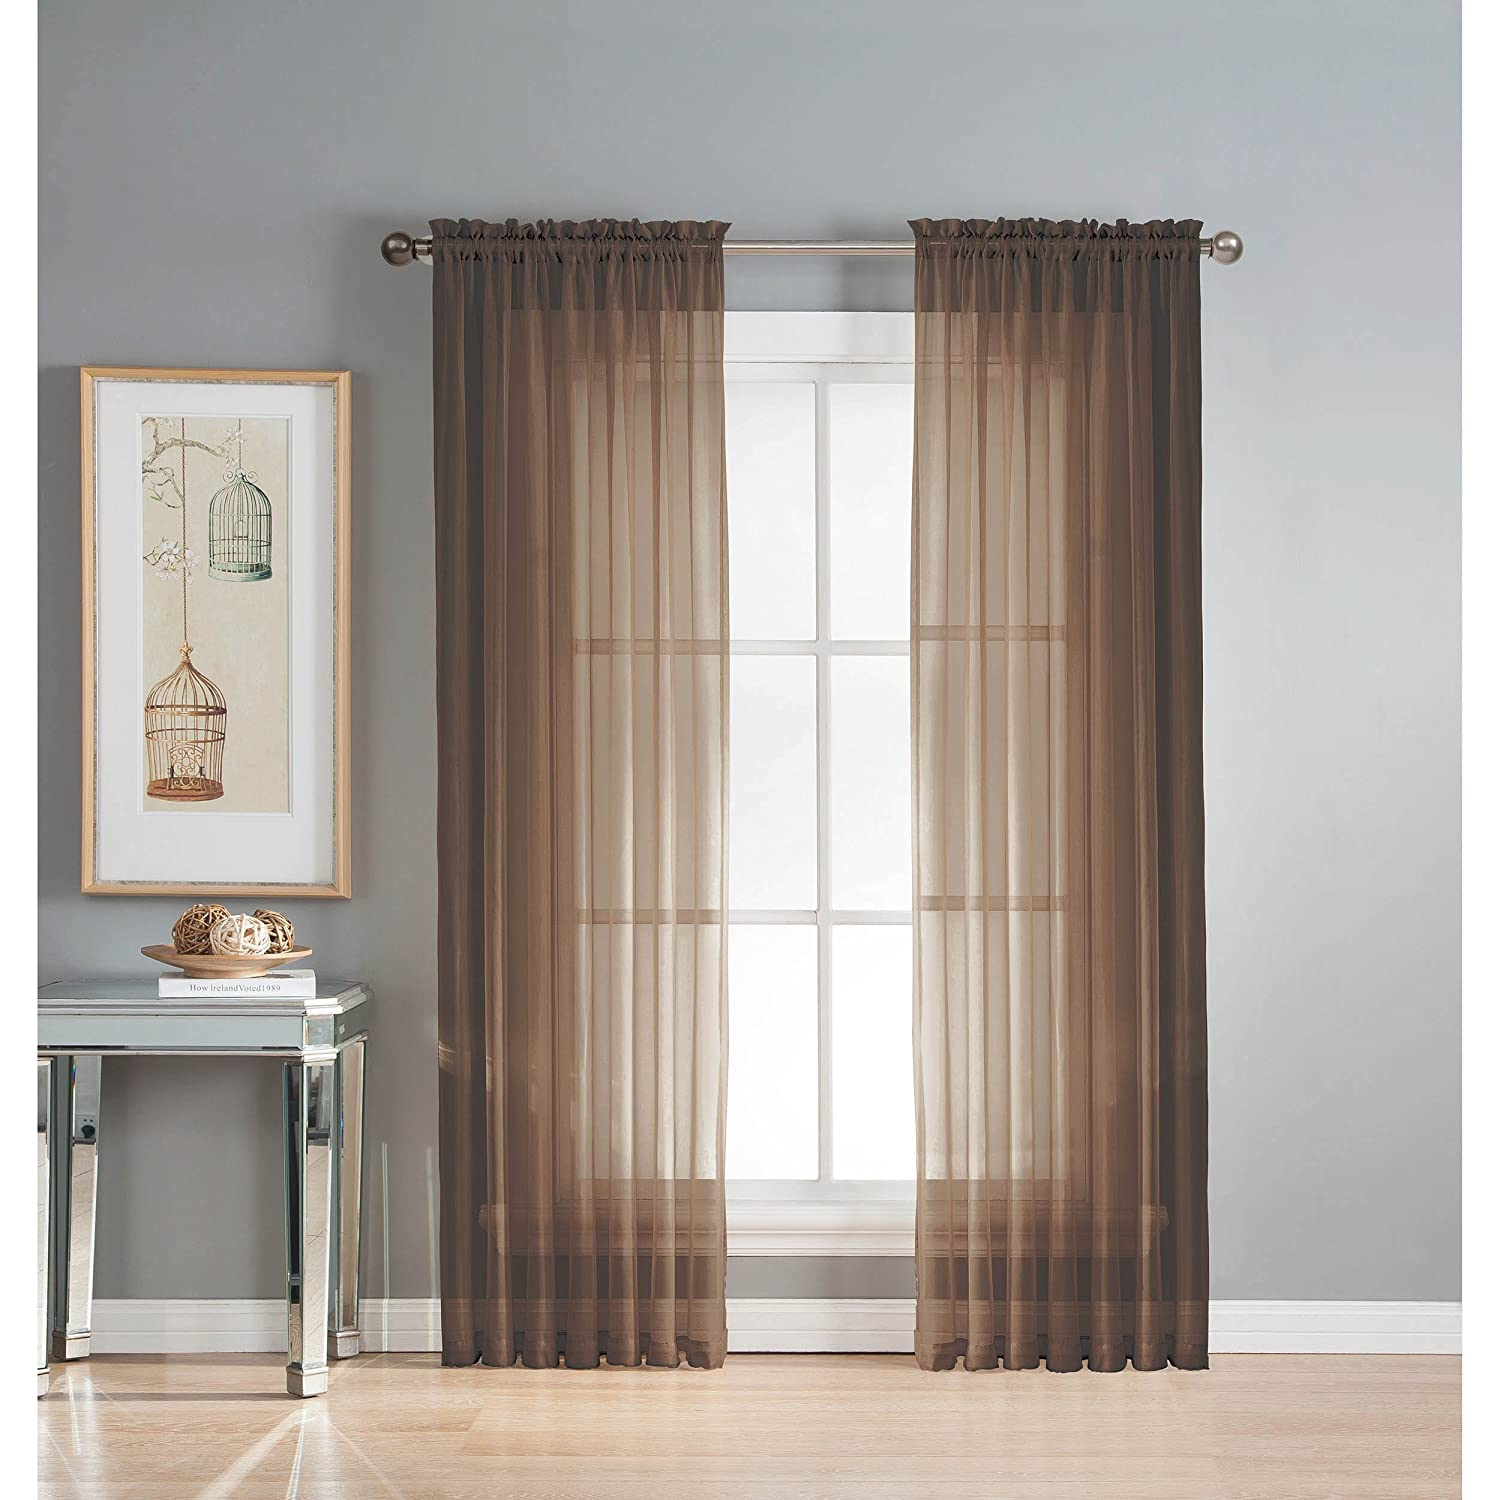 product in voile trim made savannah tassel cream silver curtain black white curtains or panel ready